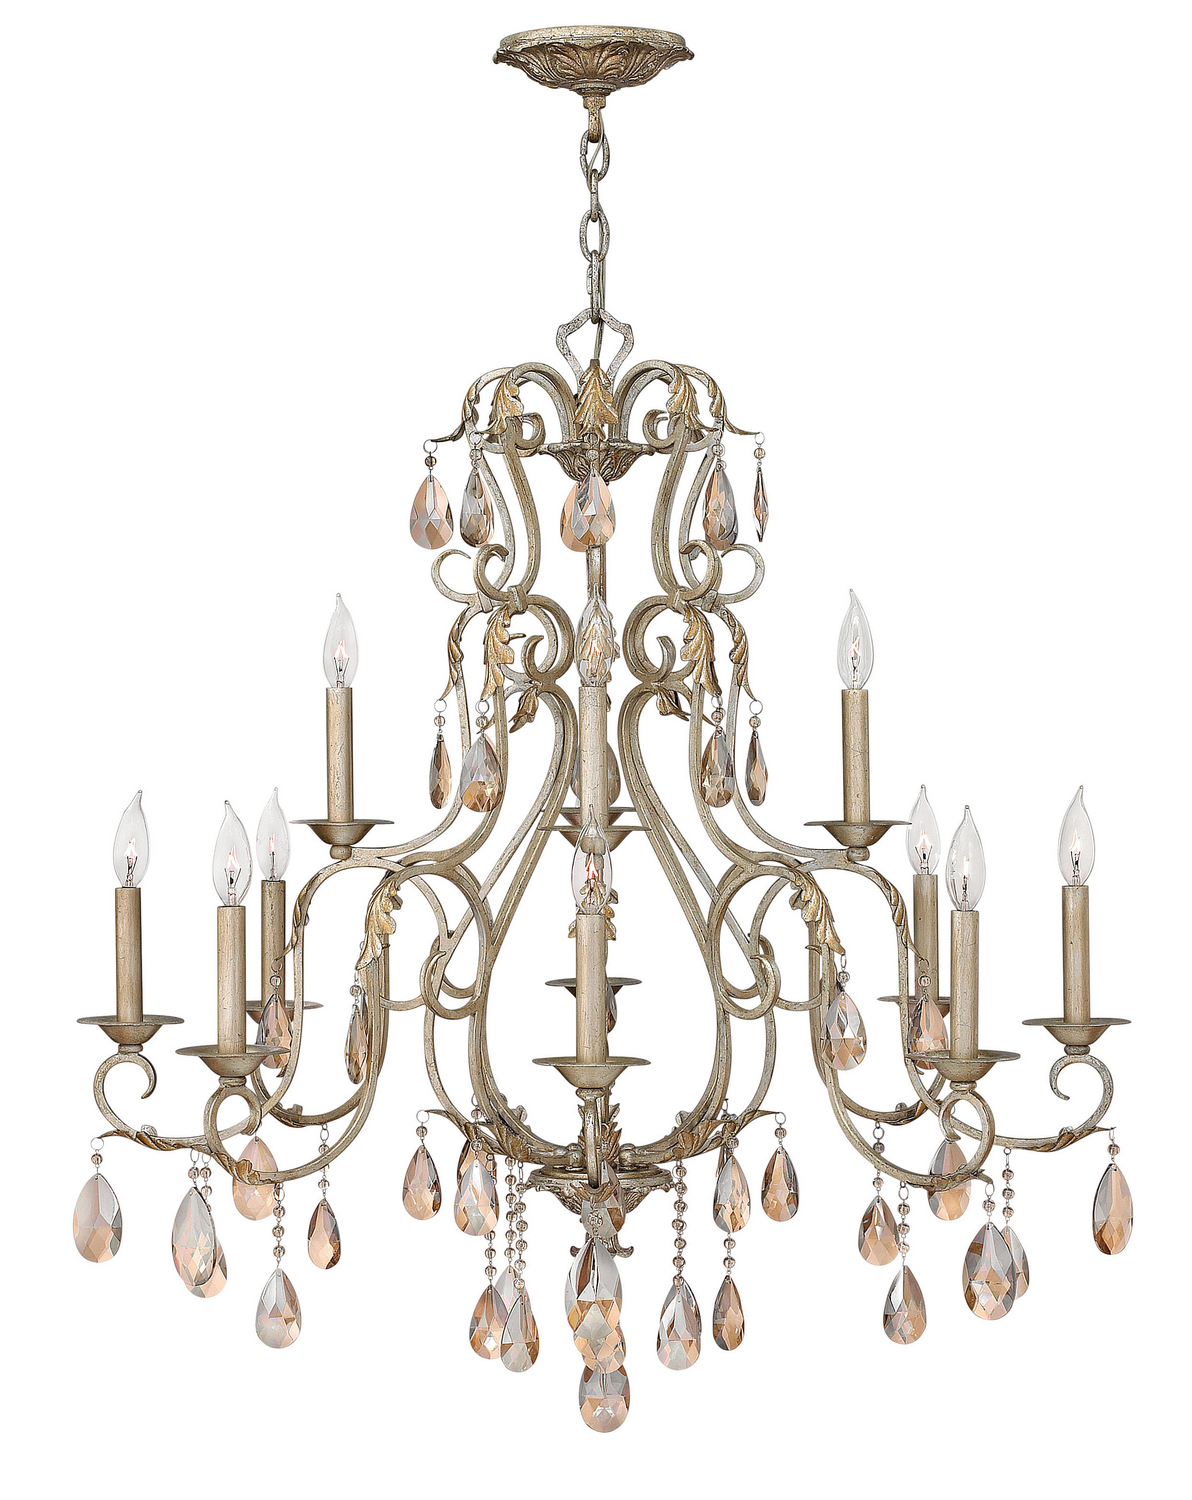 12 Light Foyer Pendant from the Carlton collection by Hinkley 4778SL